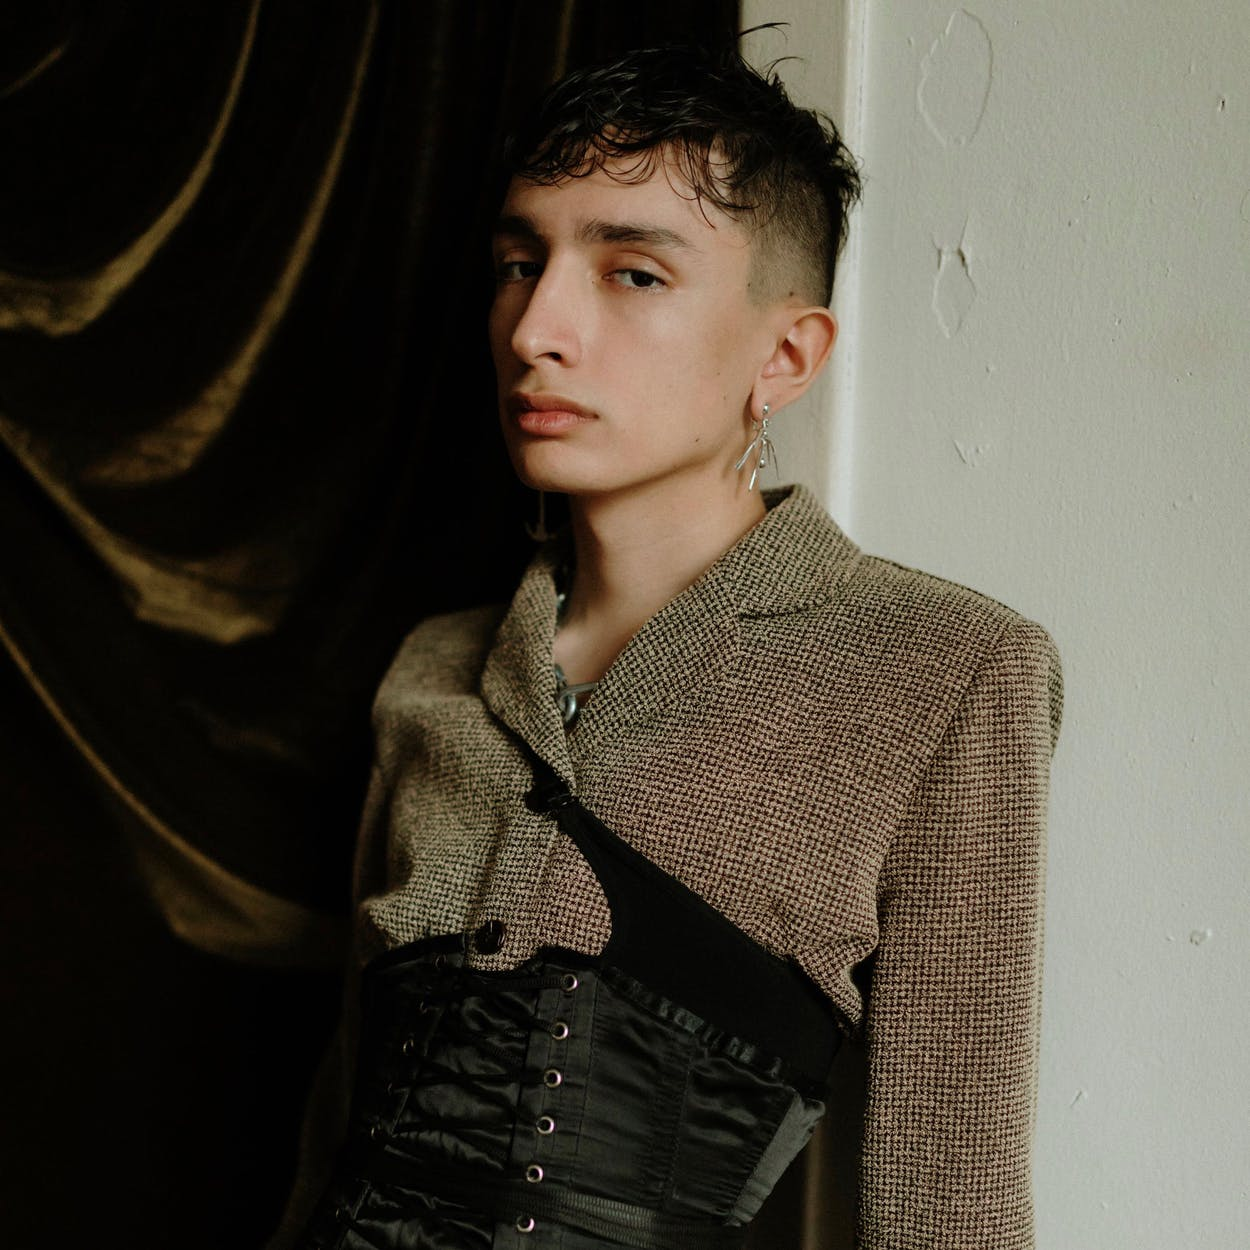 Andres Vidal, an f10 model, shot in Brownsville in February 2019.